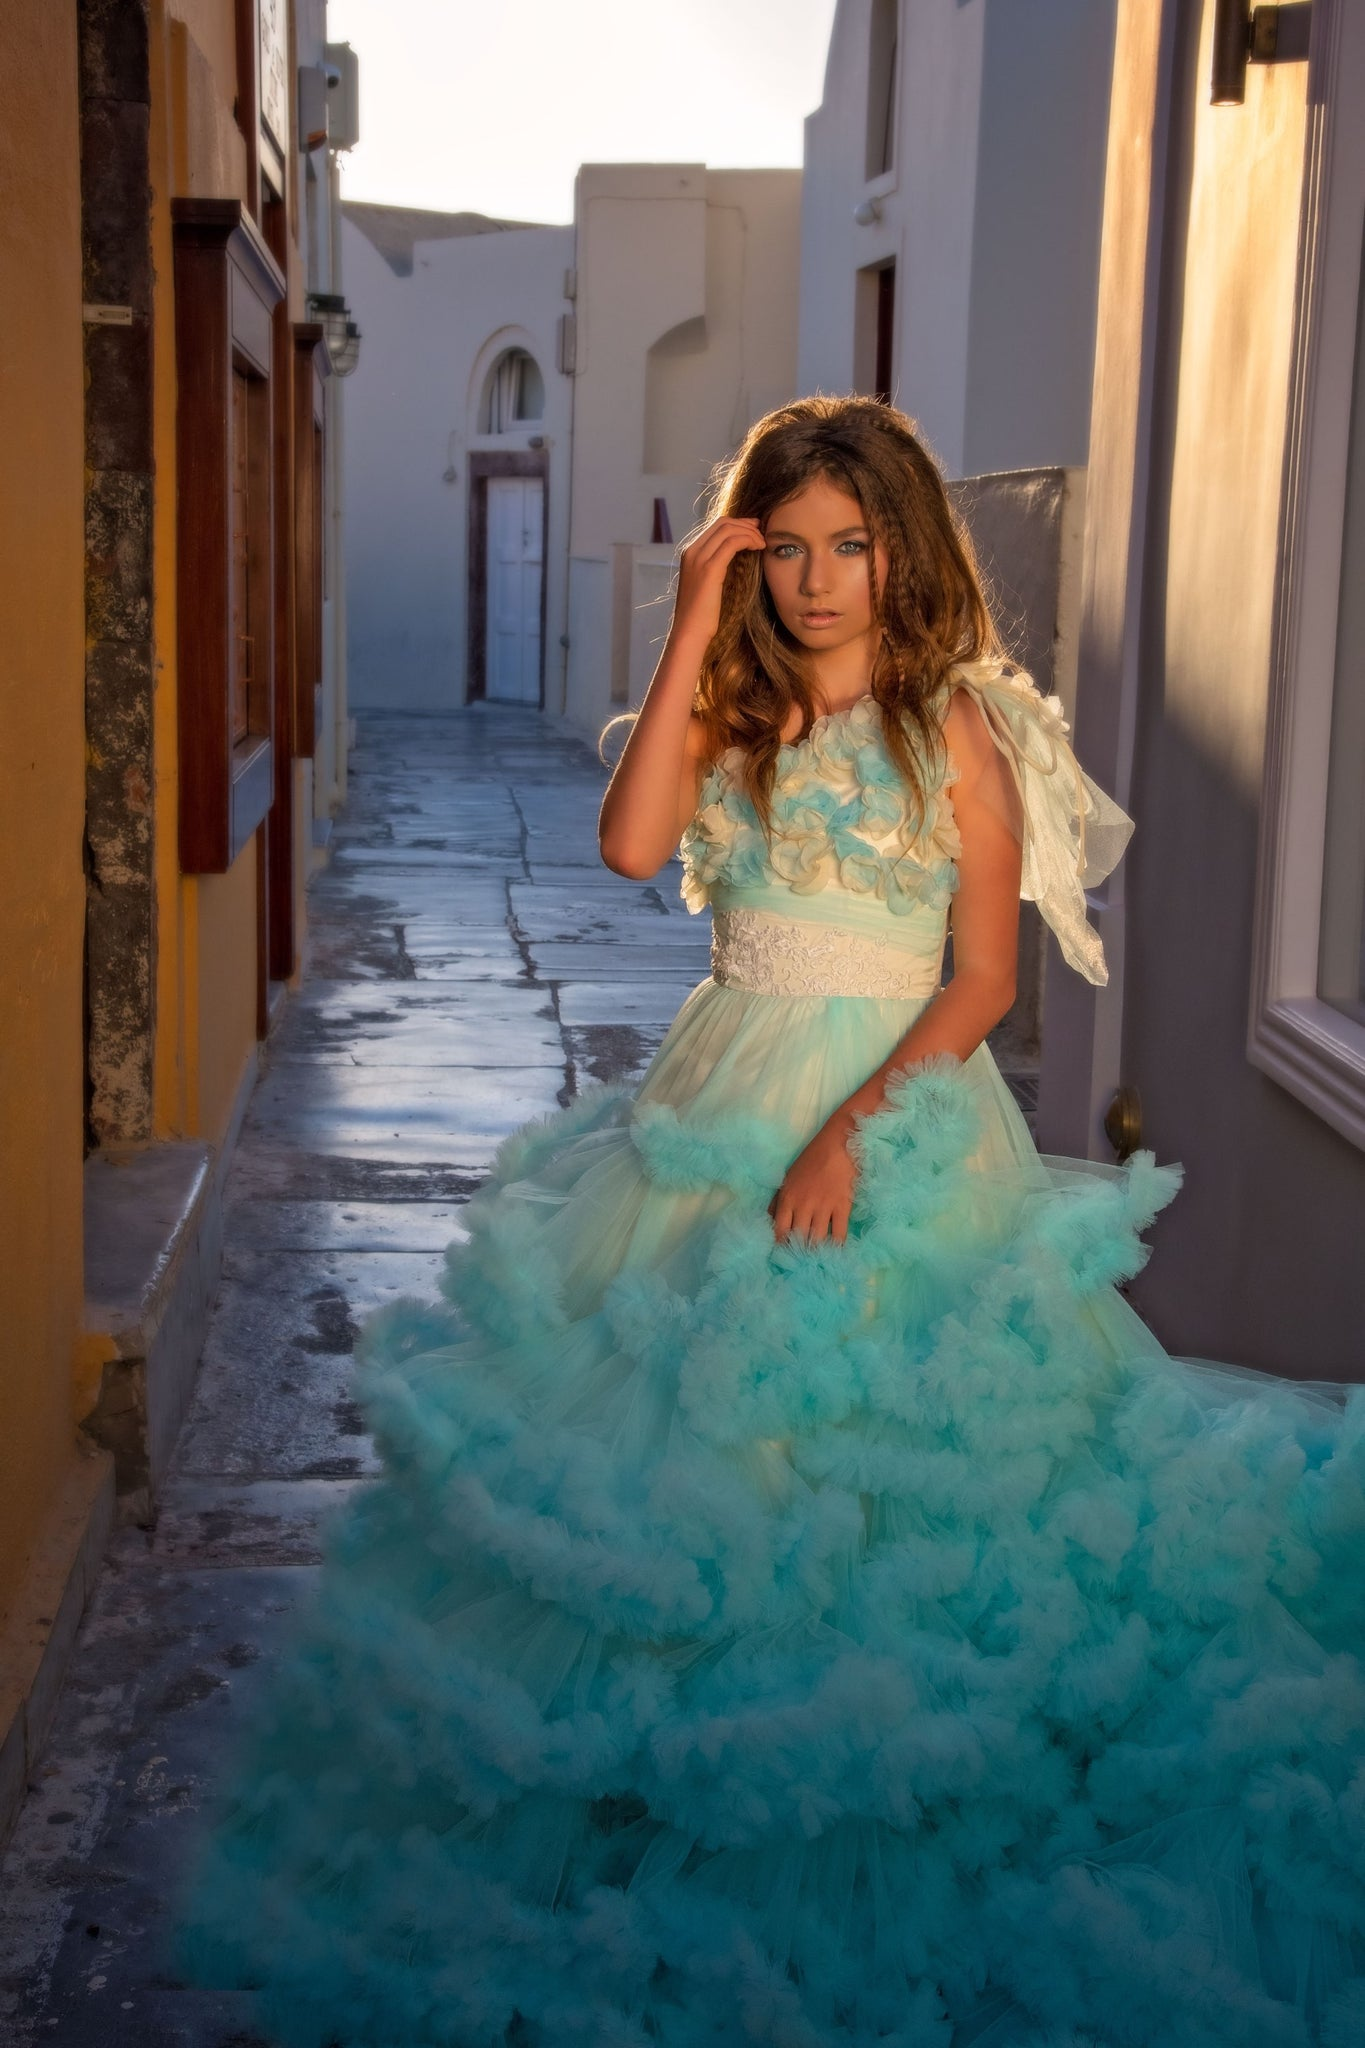 """Springtime Serenade""... A Beautiful Ruffled Tulle Ballgown"